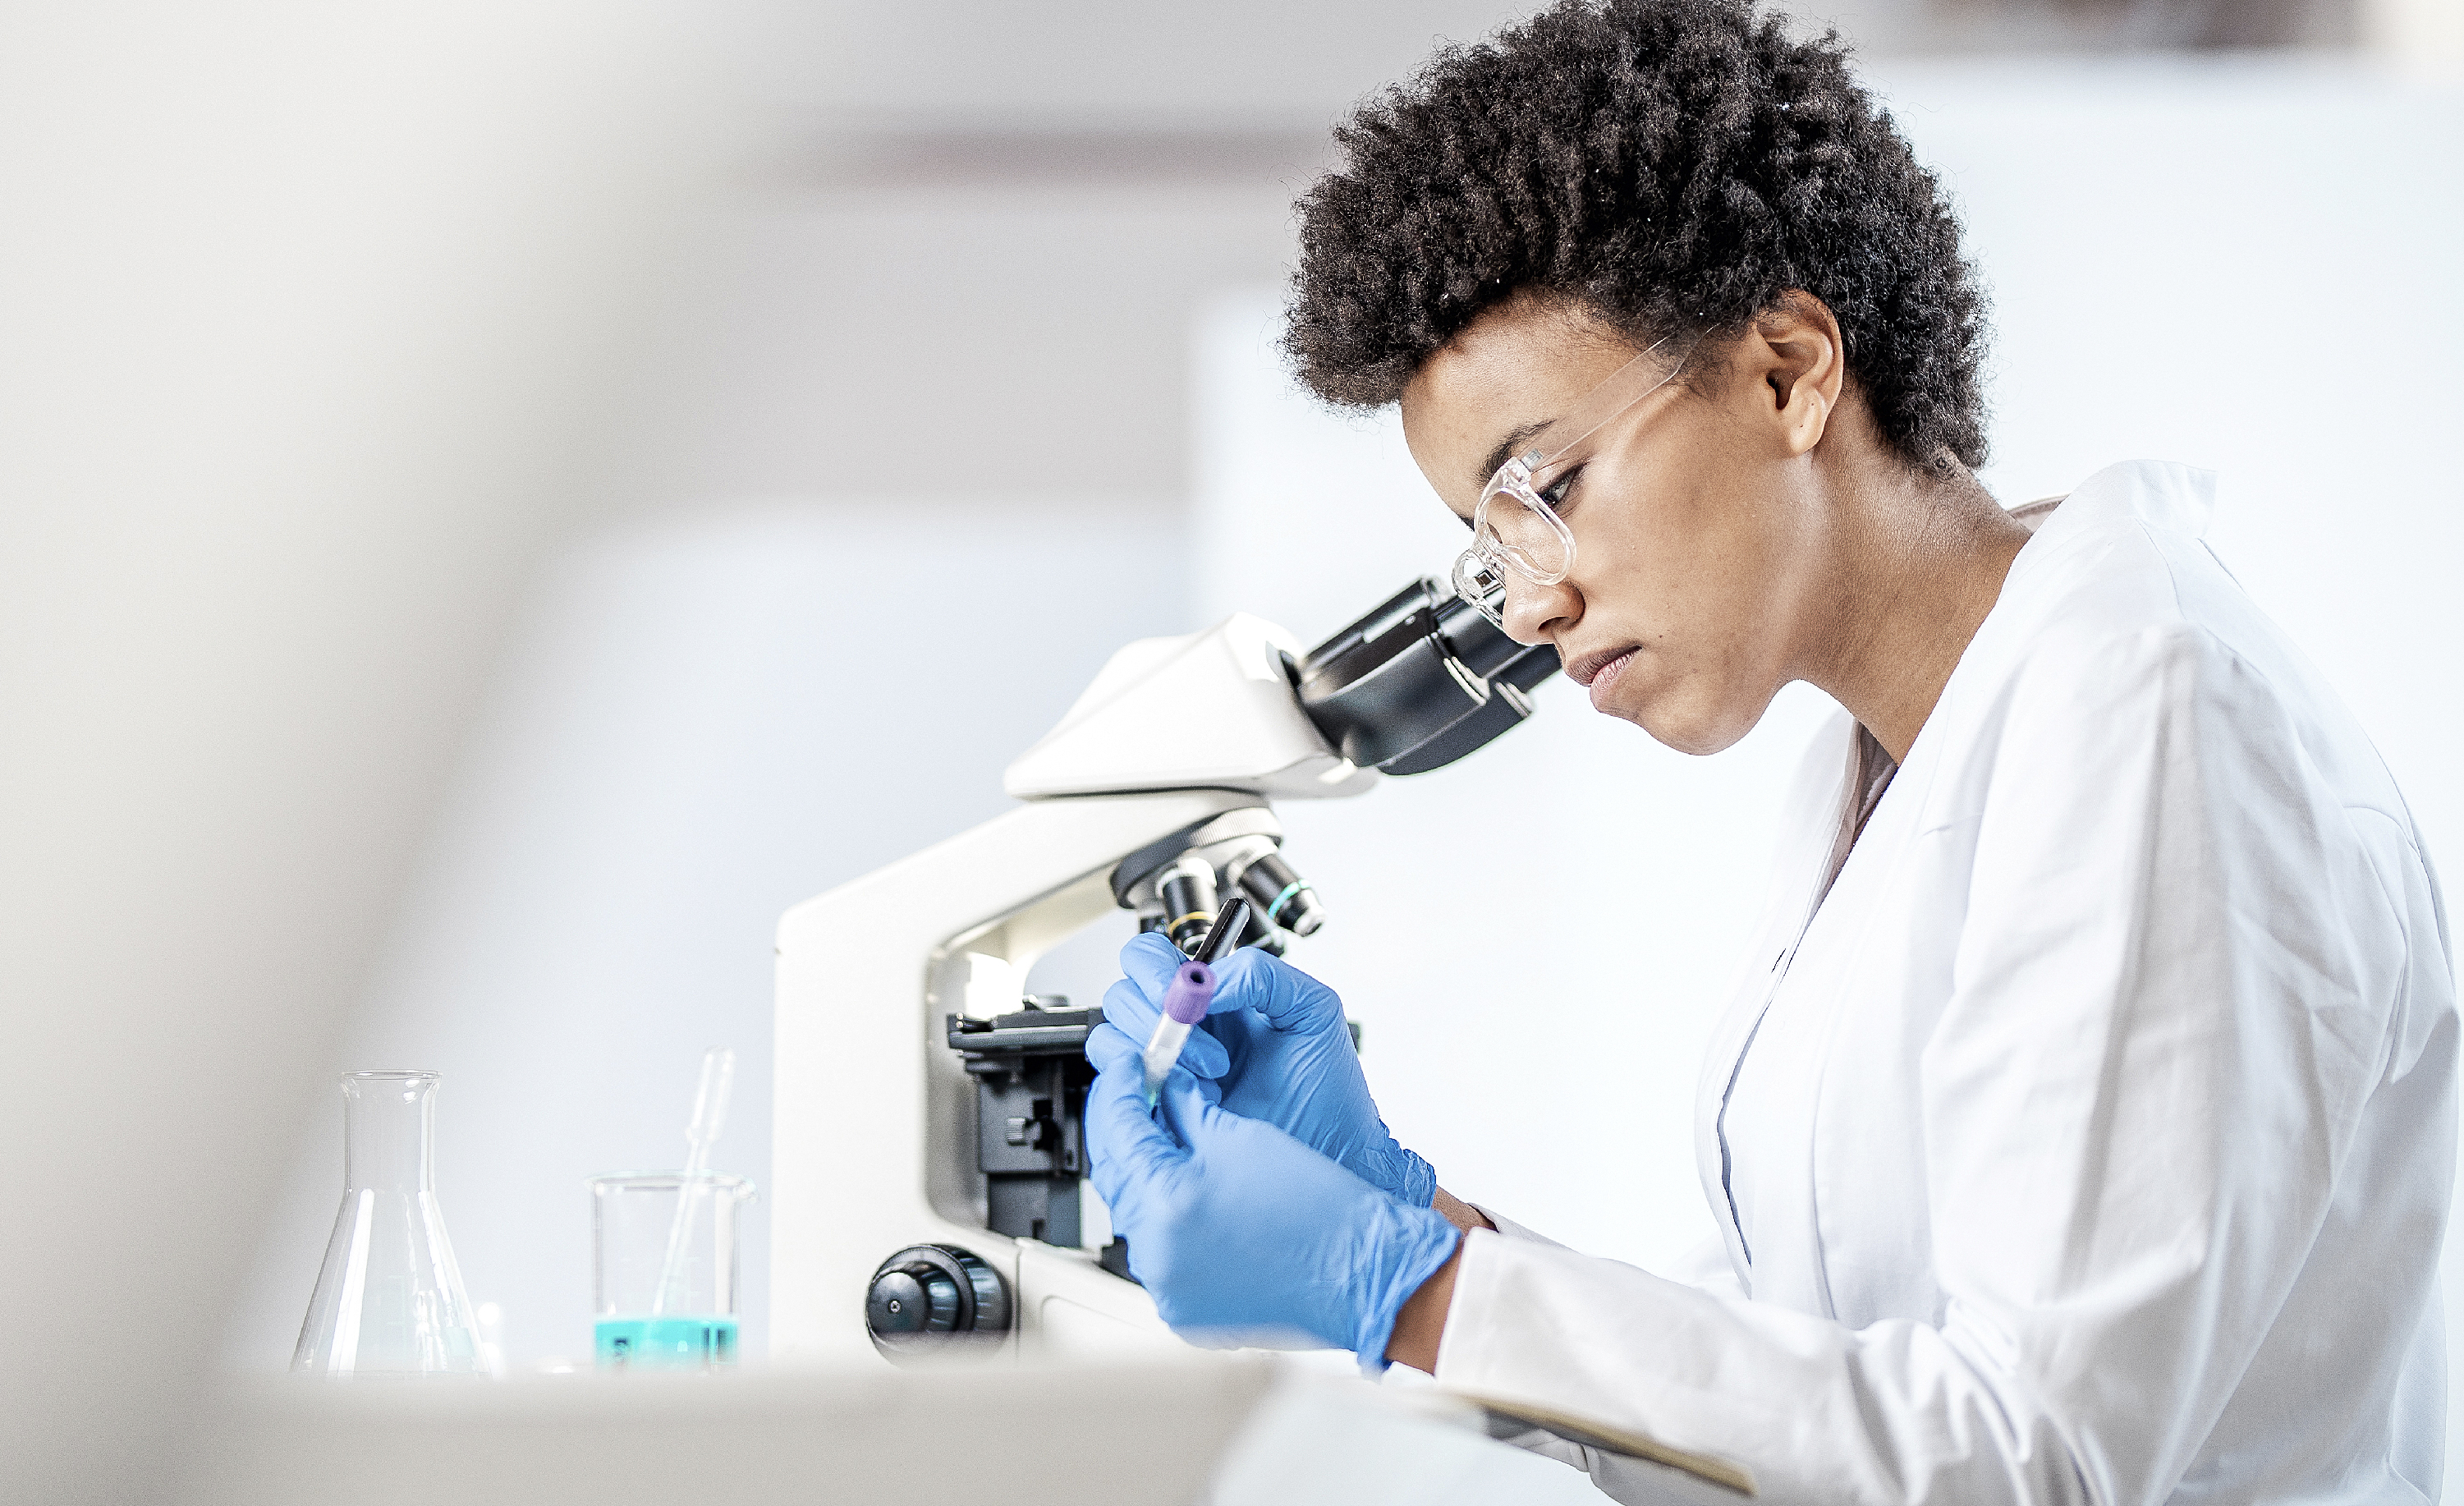 woman in a lab working on a microscope and marking a test tube